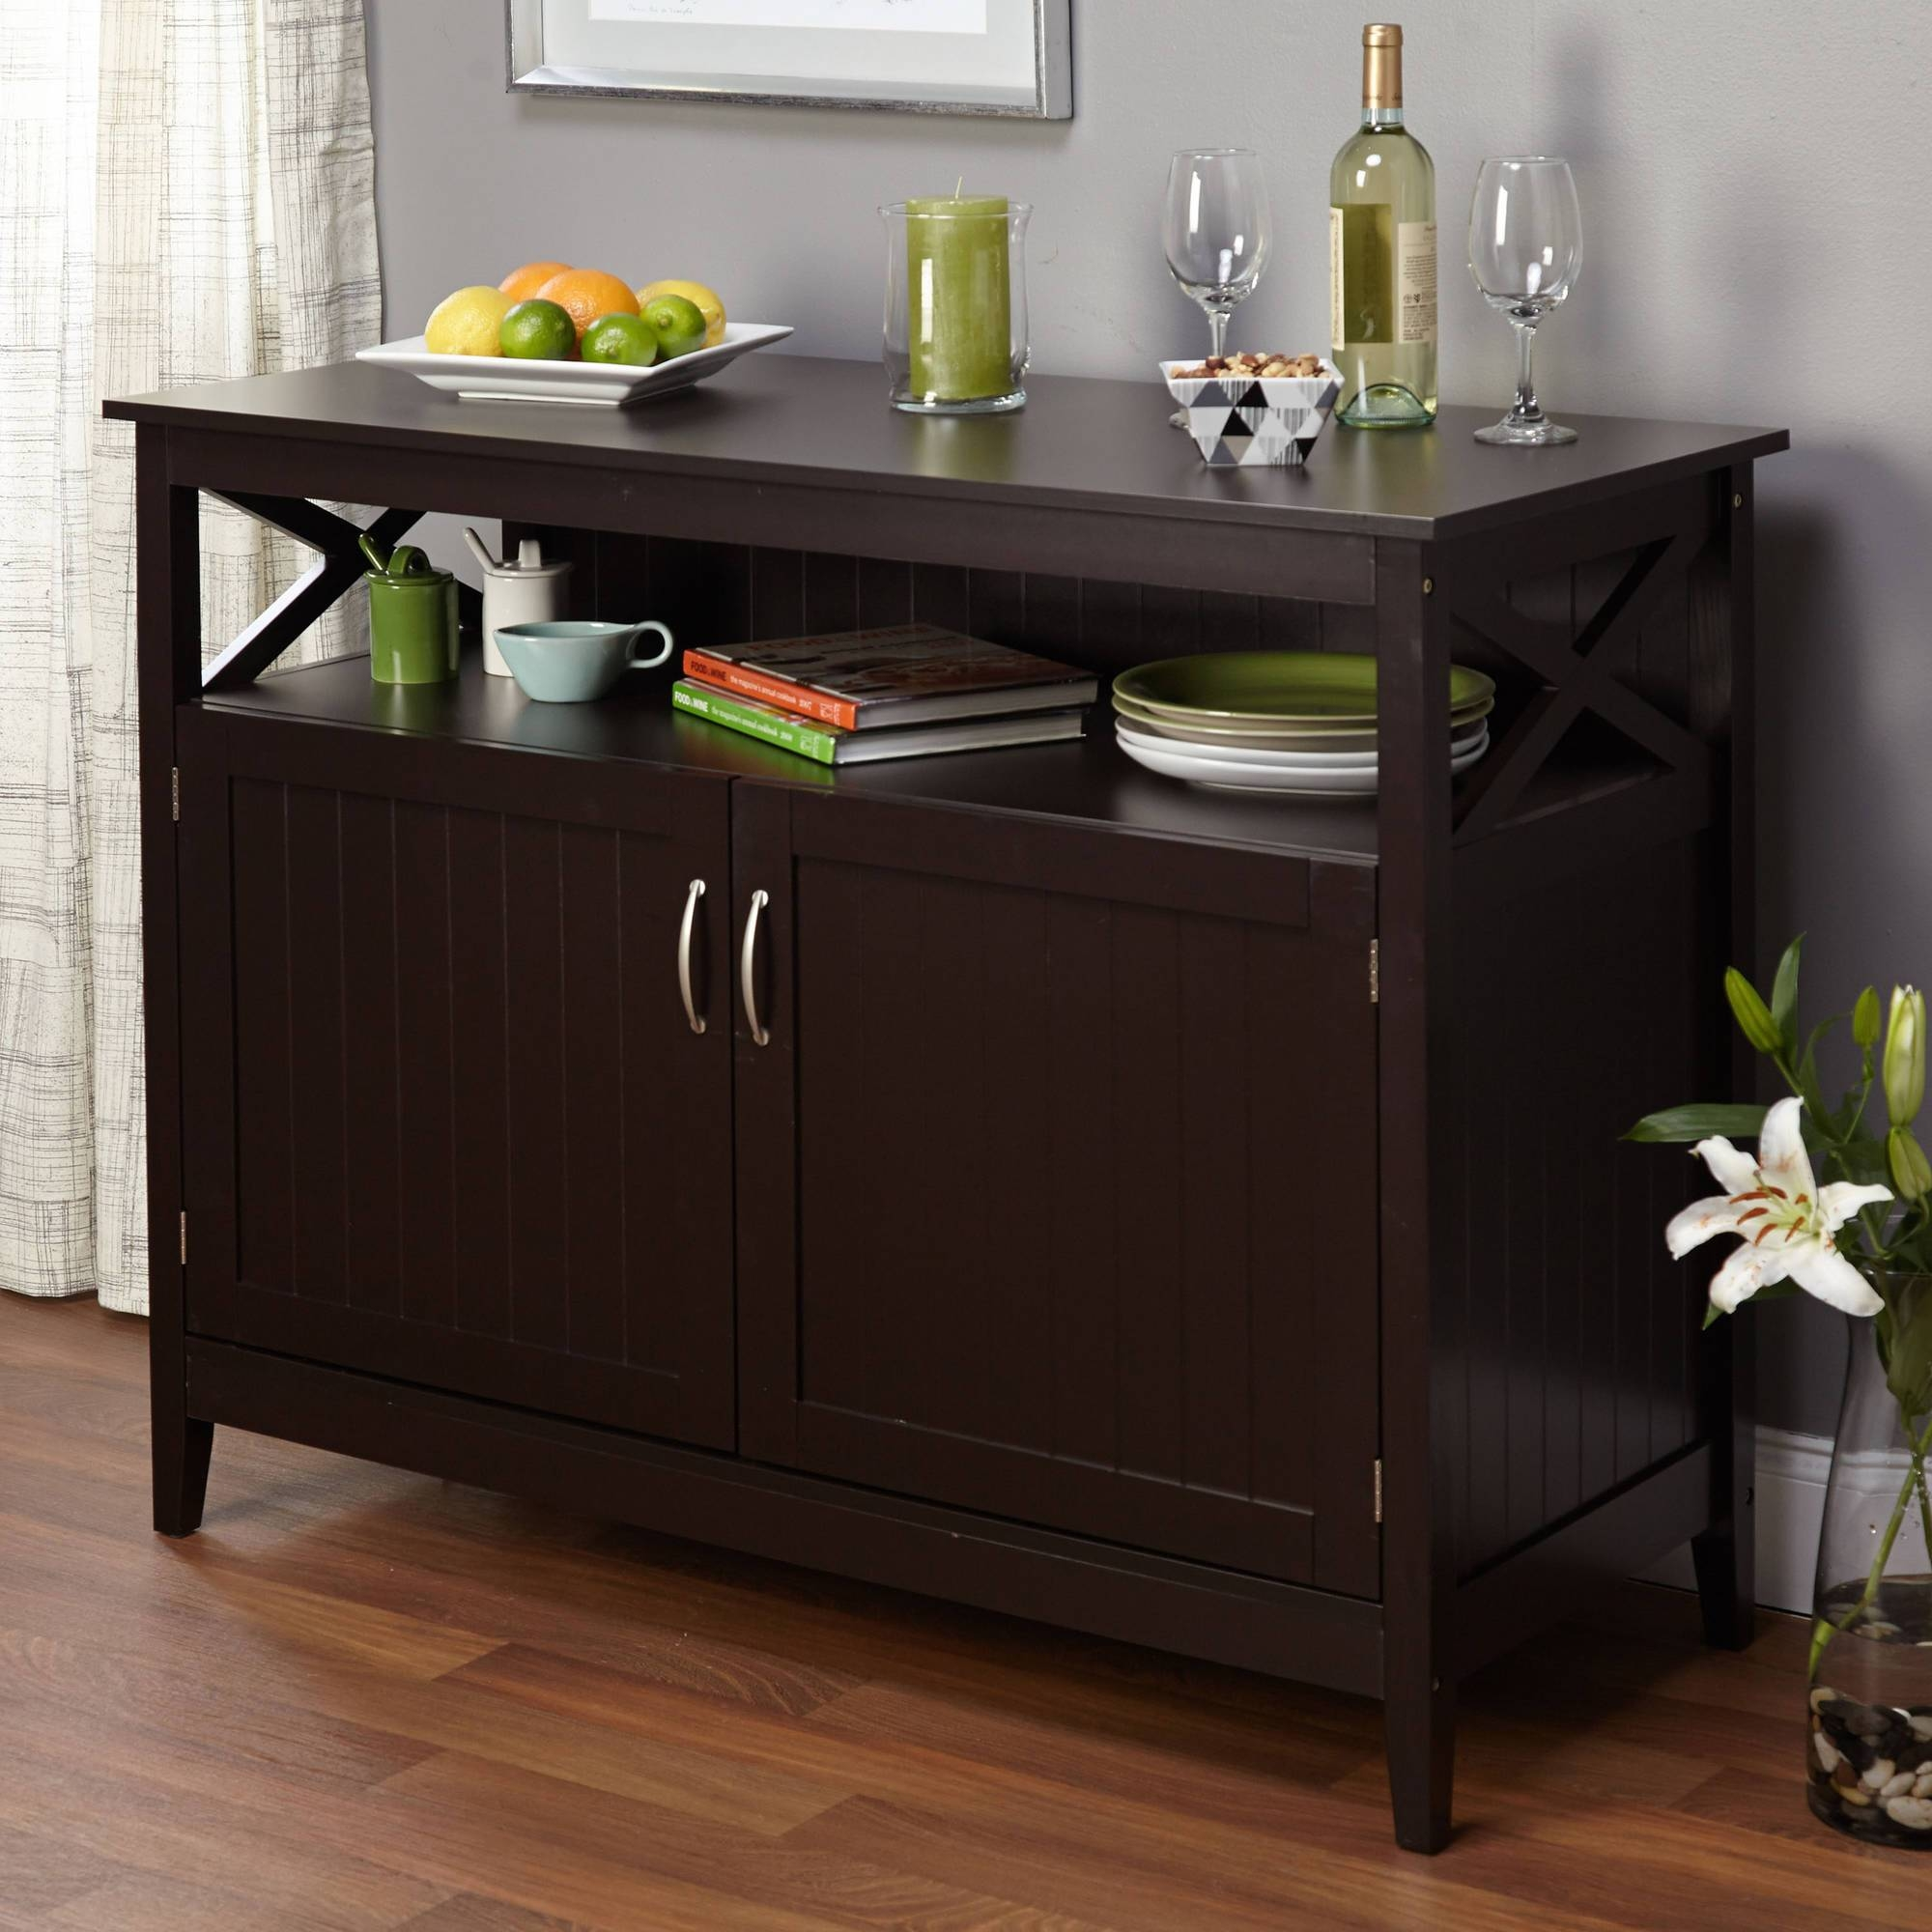 New Sideboard Buffet Server – Bjdgjy For Latest Buffet Servers And Sideboards (View 12 of 15)